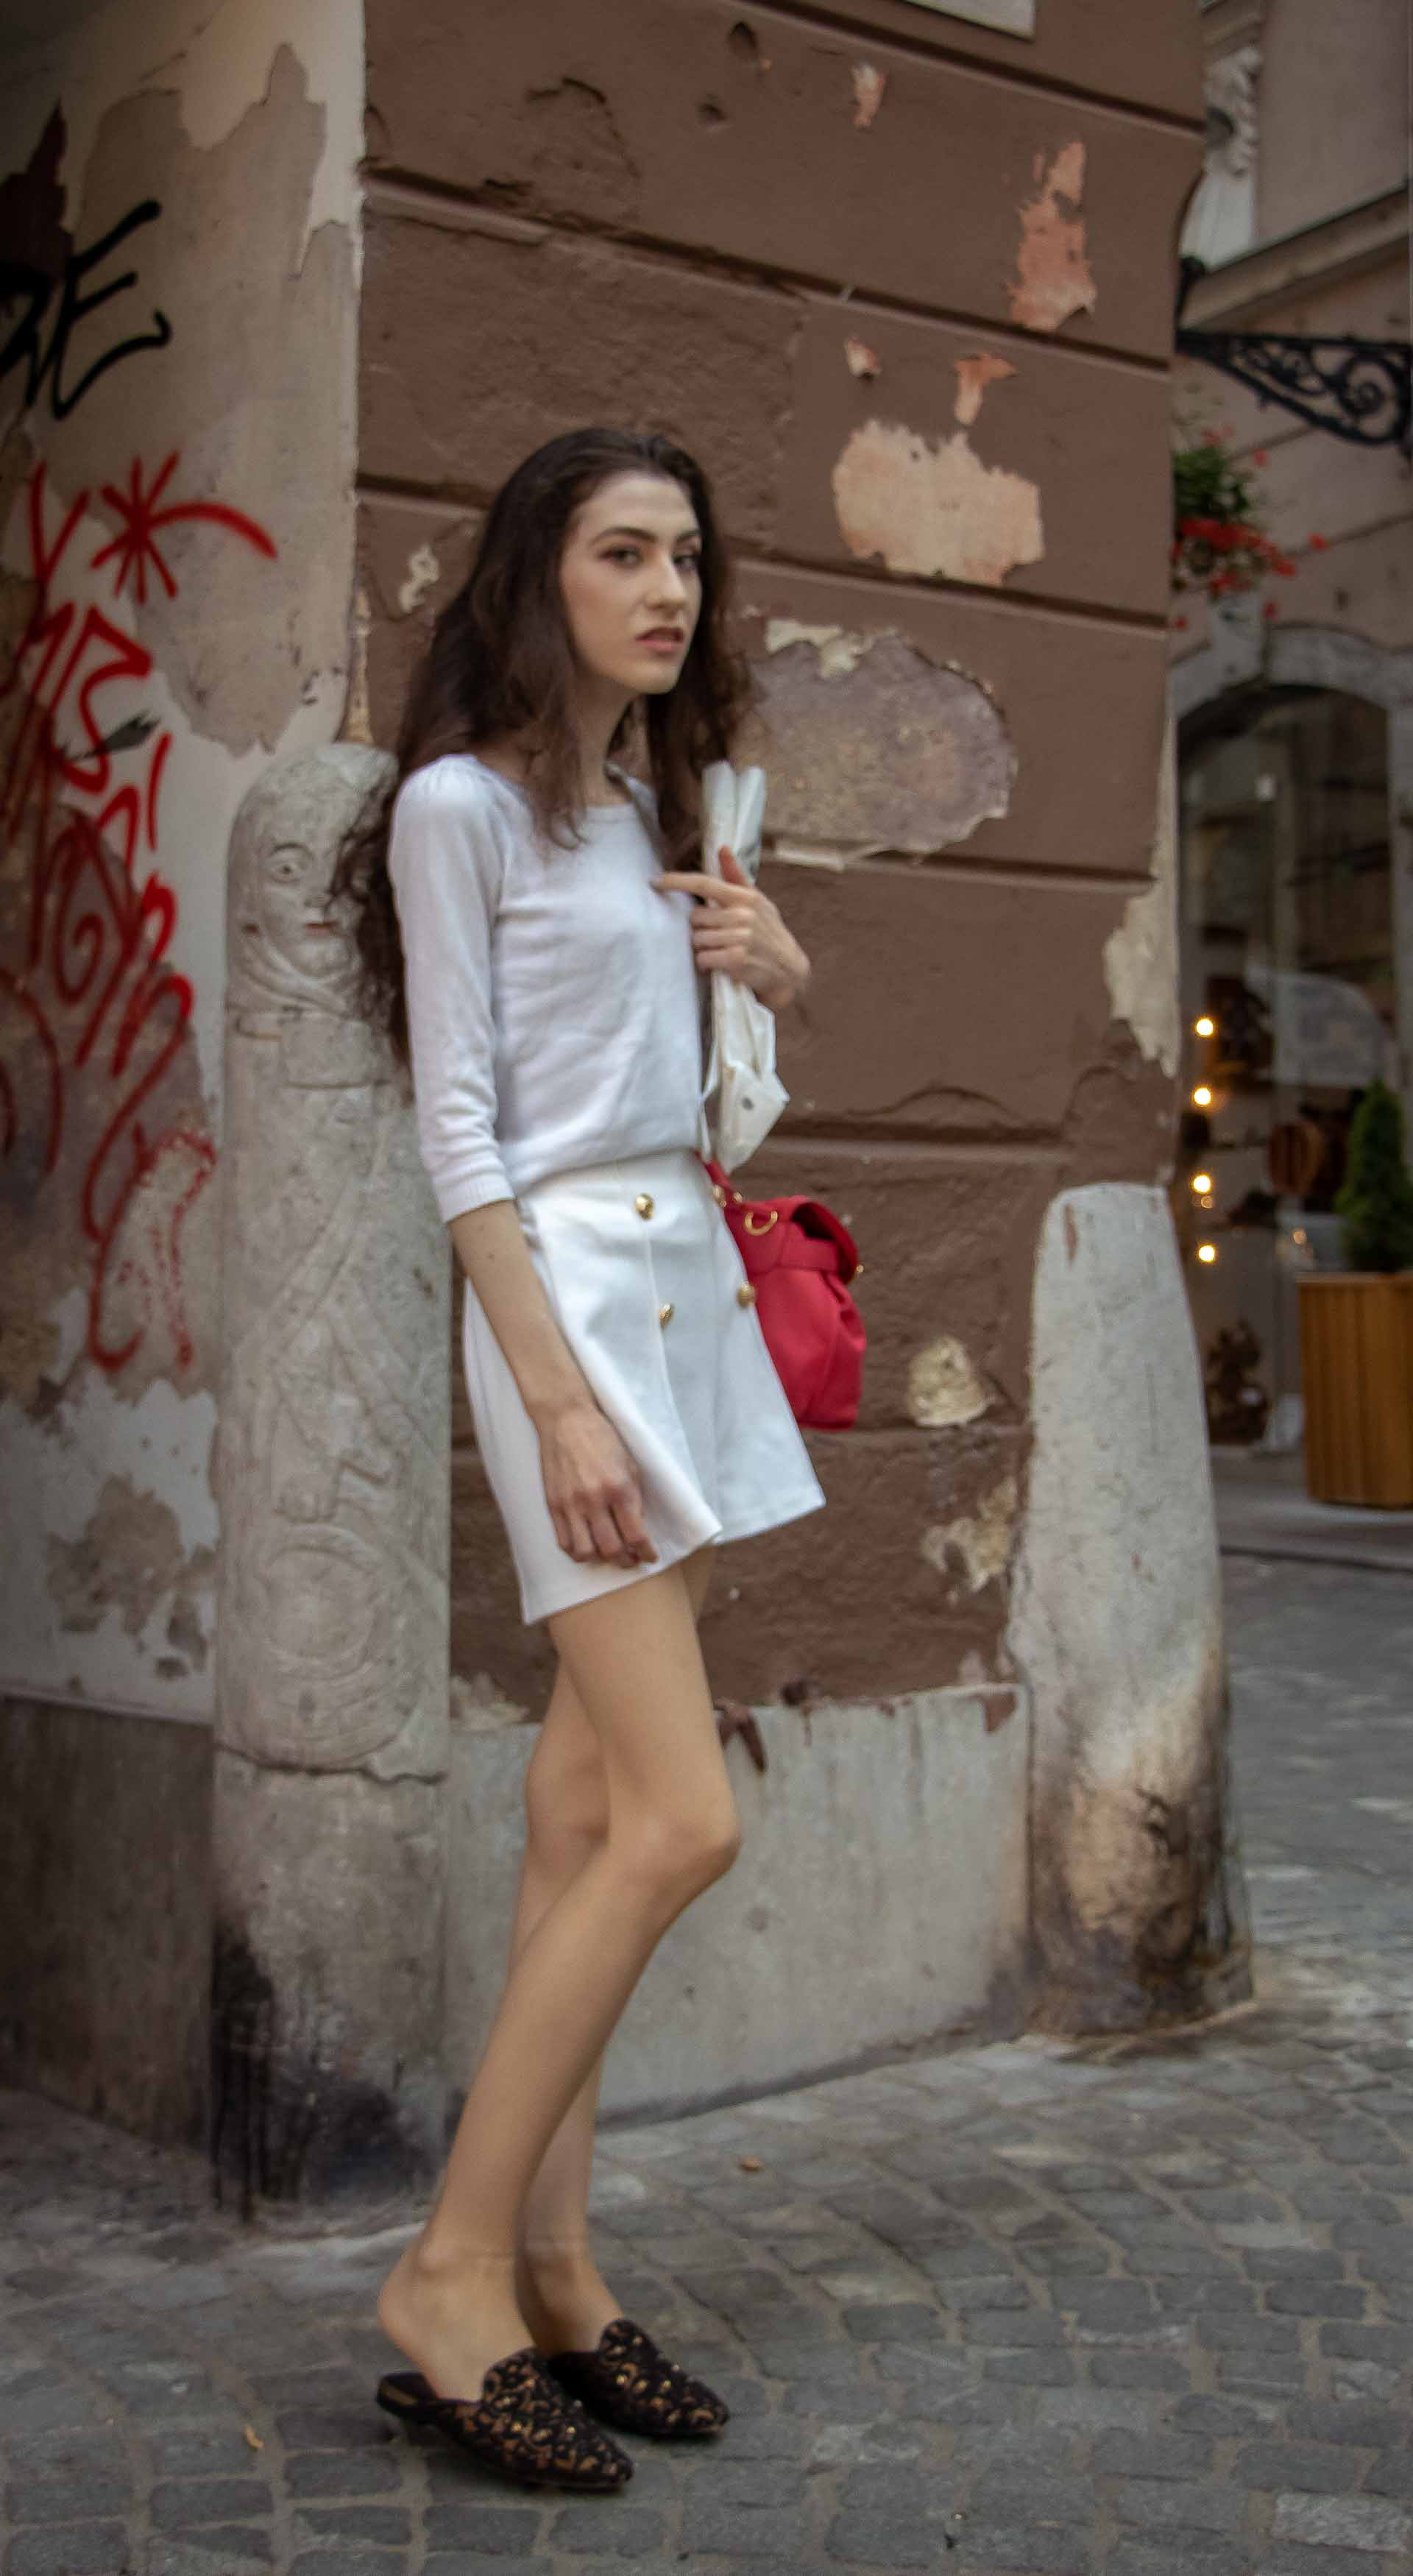 Beautiful Slovenian Fashion Blogger Veronika Lipar of Brunette from Wall dressed in all in white outfit, a white sweater, white tailored shorts, black flat slipper mules, pink top handle bag, a paper bag while standing on the street in Ljubljana